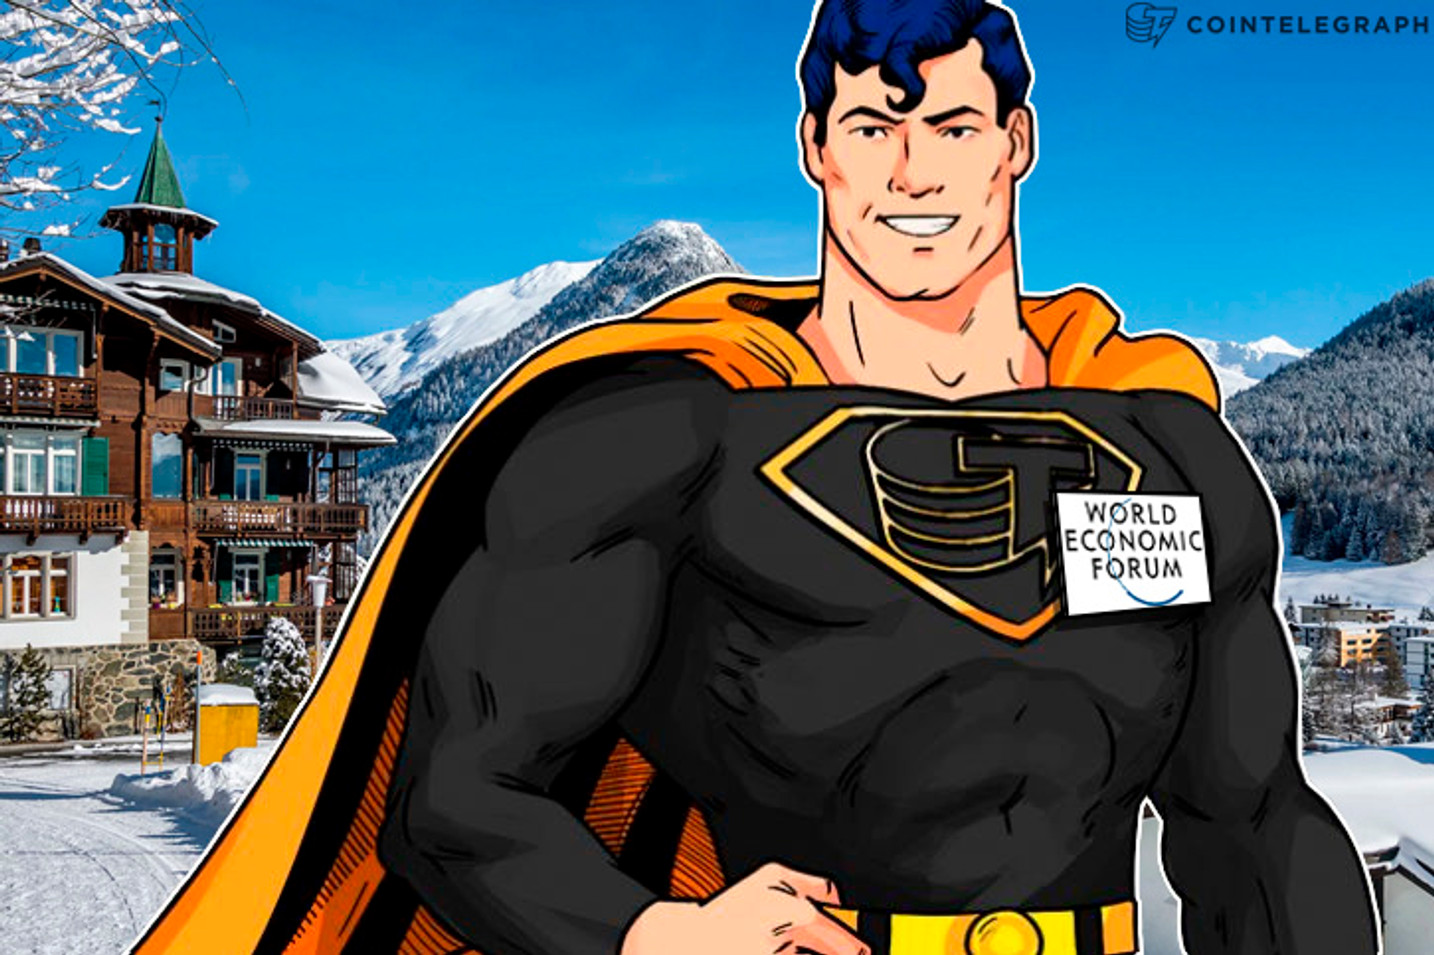 Cointelegraph Heads To Davos For WEF, Partners With Tech Tuesday Event